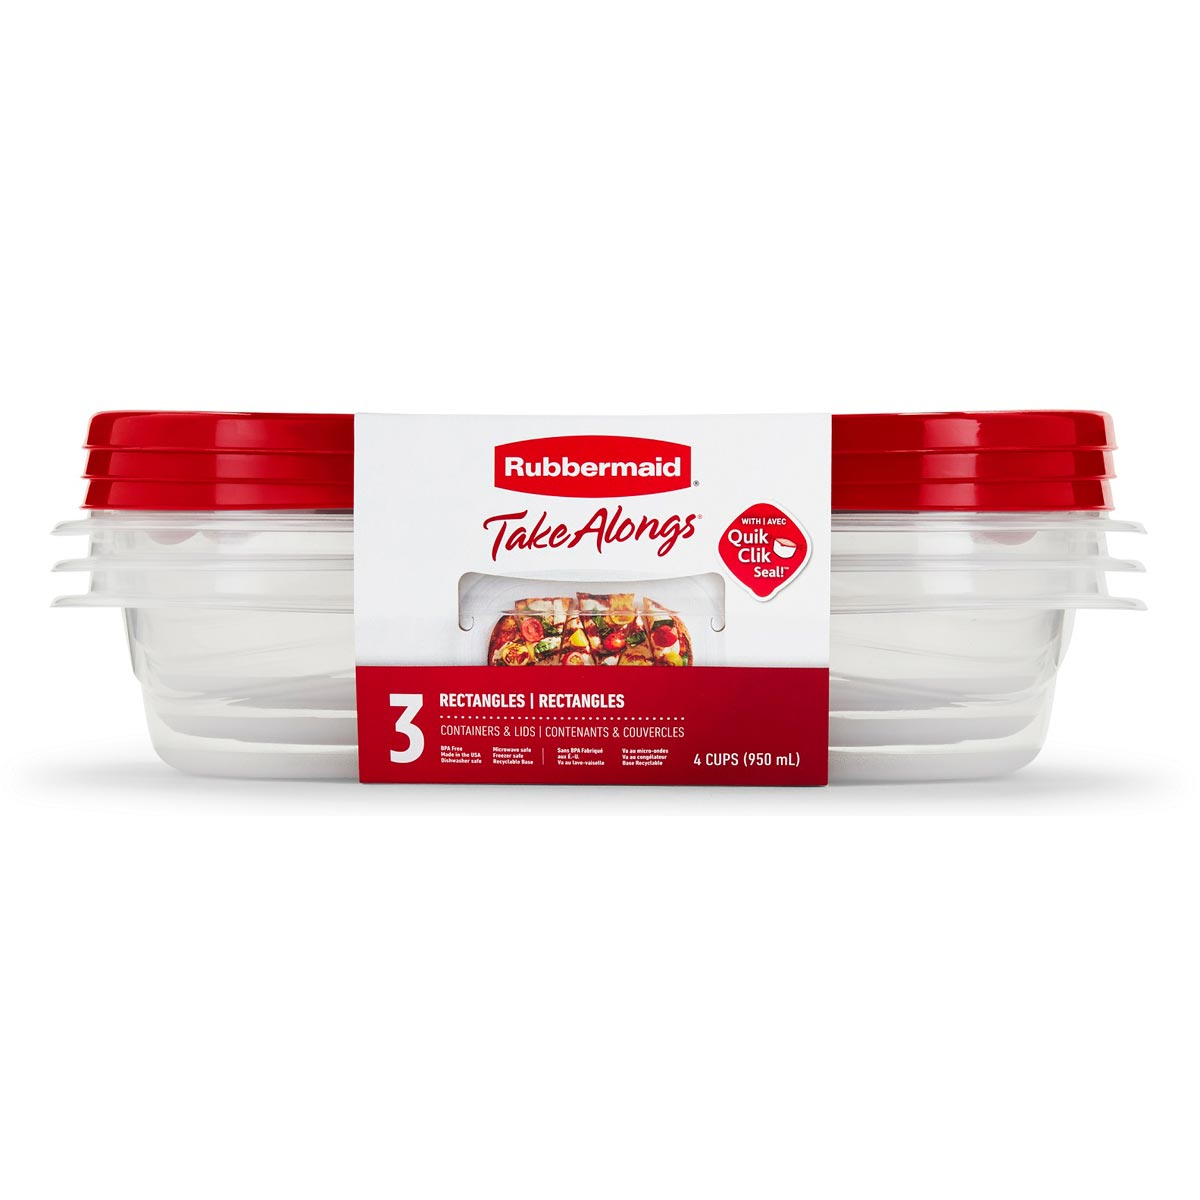 Rubbermaid TakeAlongs 3-Pack 4 Cup Rectangles Food Containers with Lids